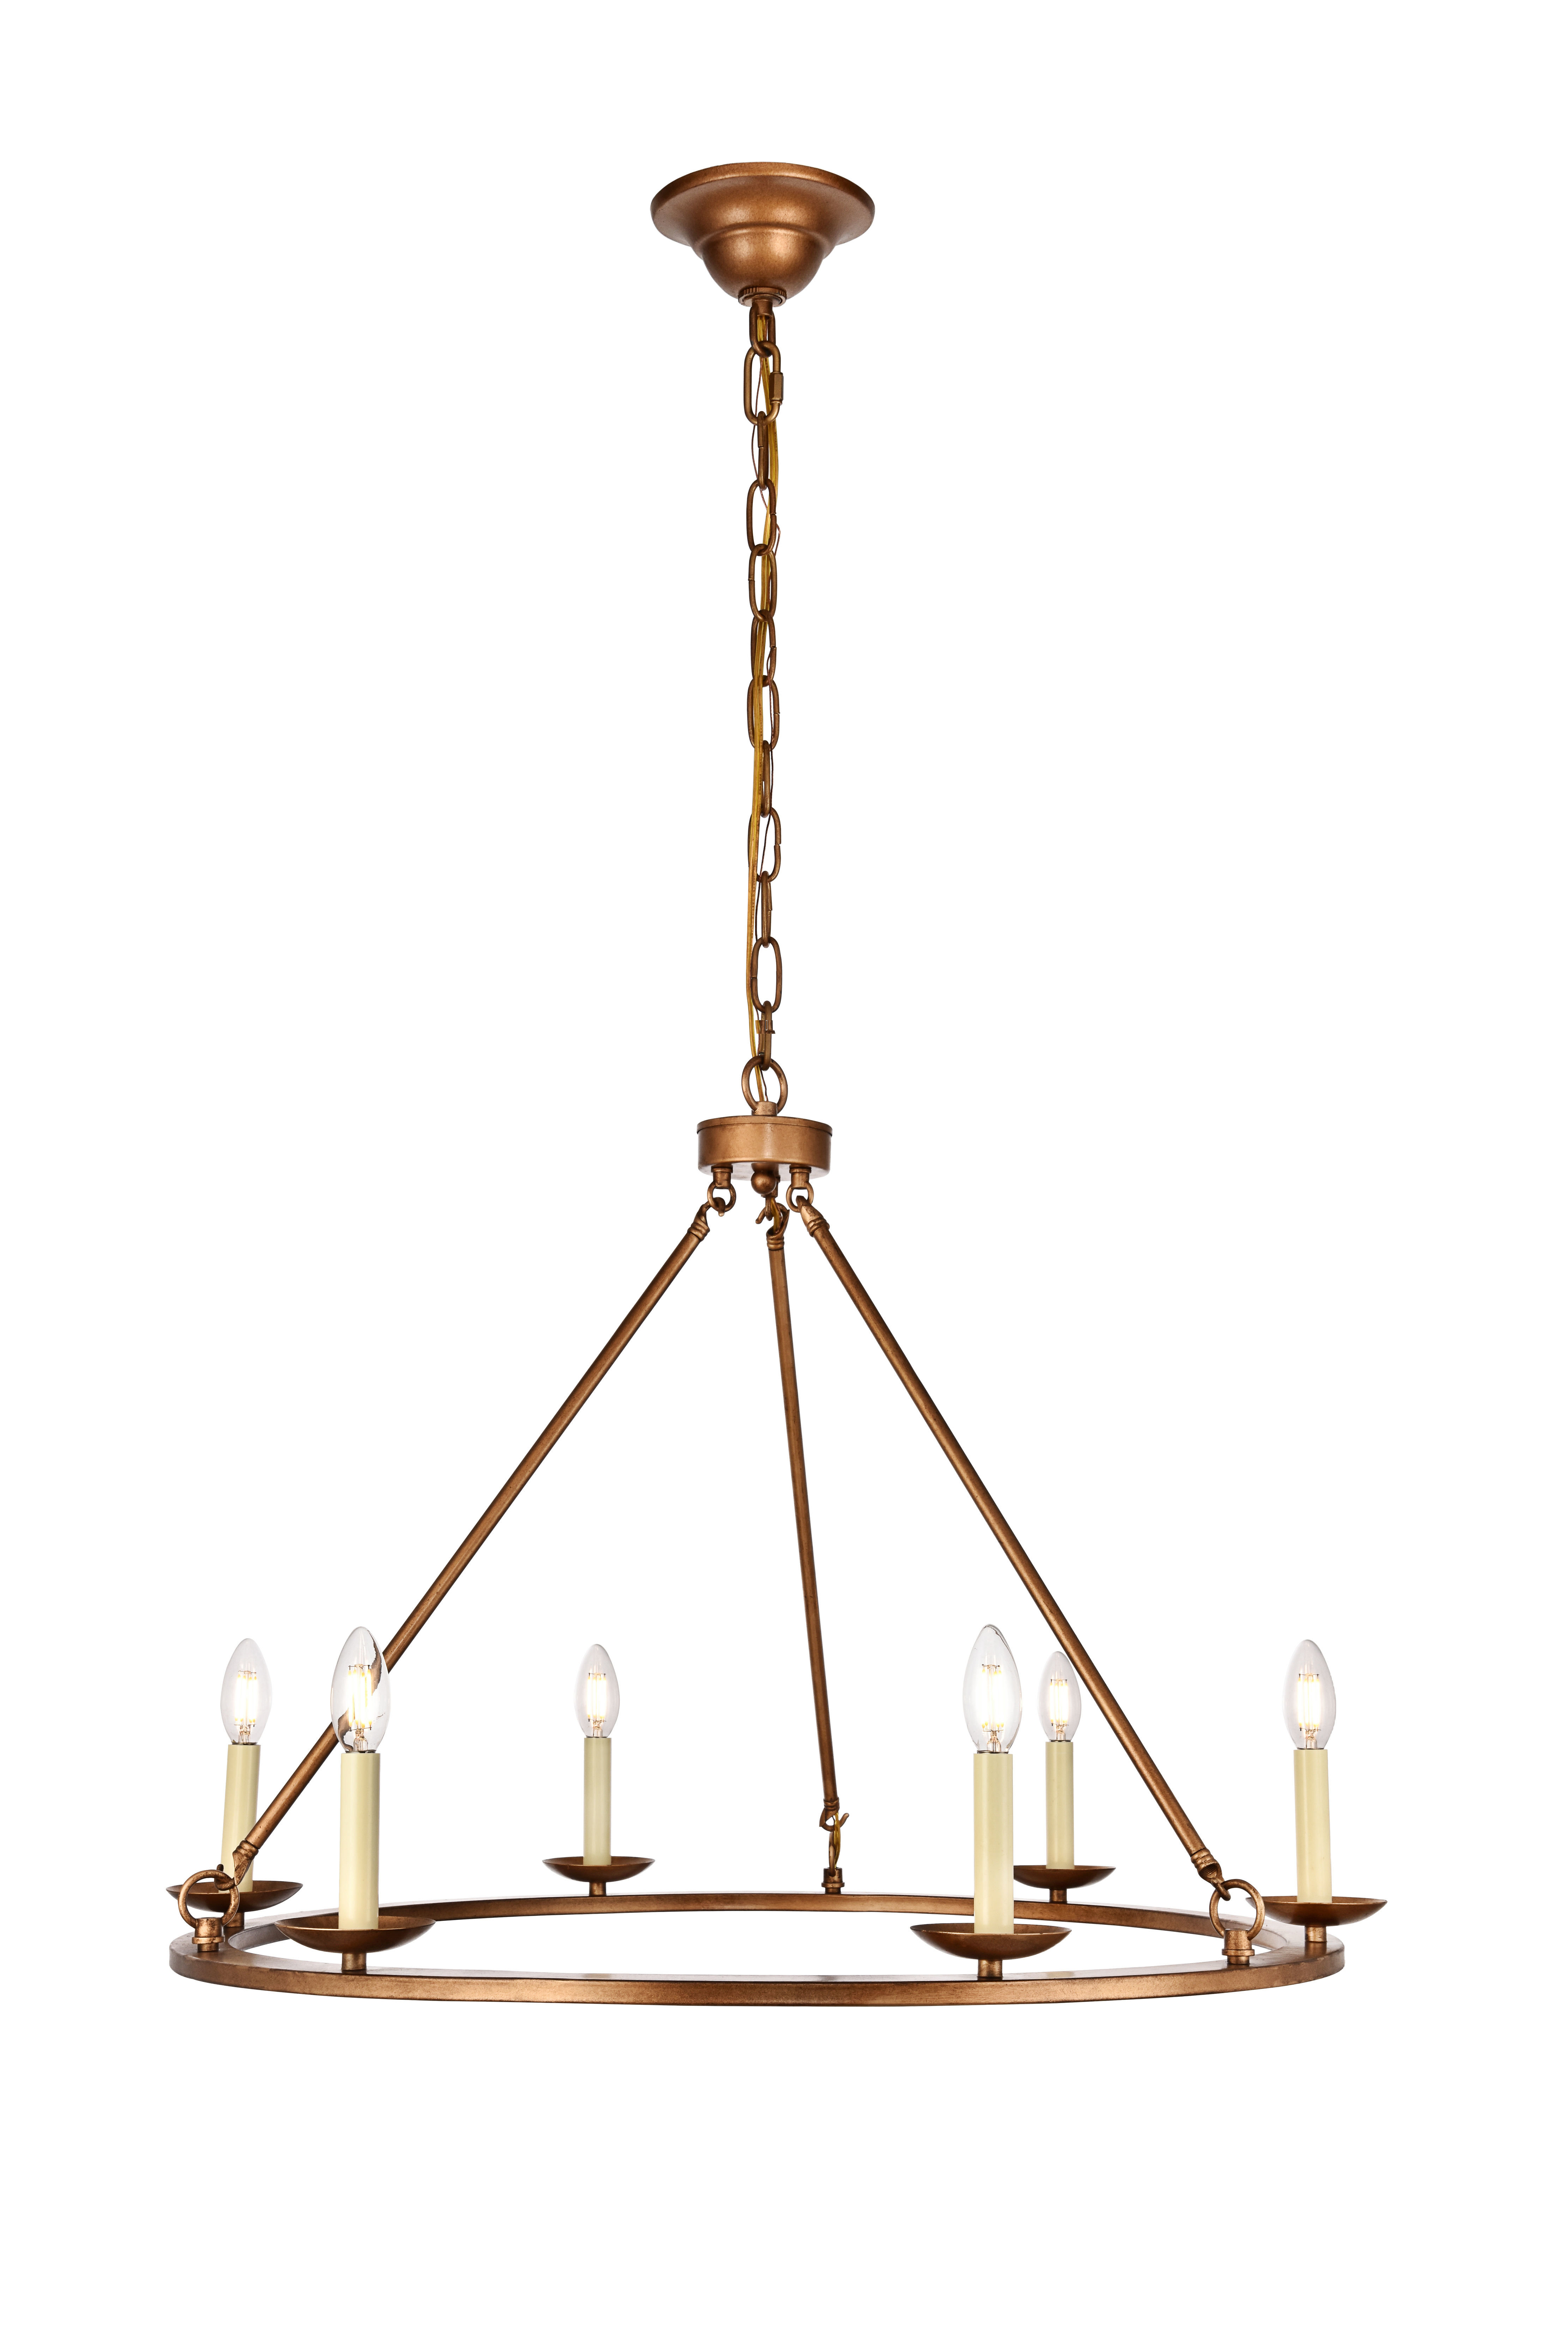 Most Current Pickensville 6 Light Wagon Wheel Chandelier Regarding Pickensville 6 Light Wagon Wheel Chandeliers (View 7 of 20)